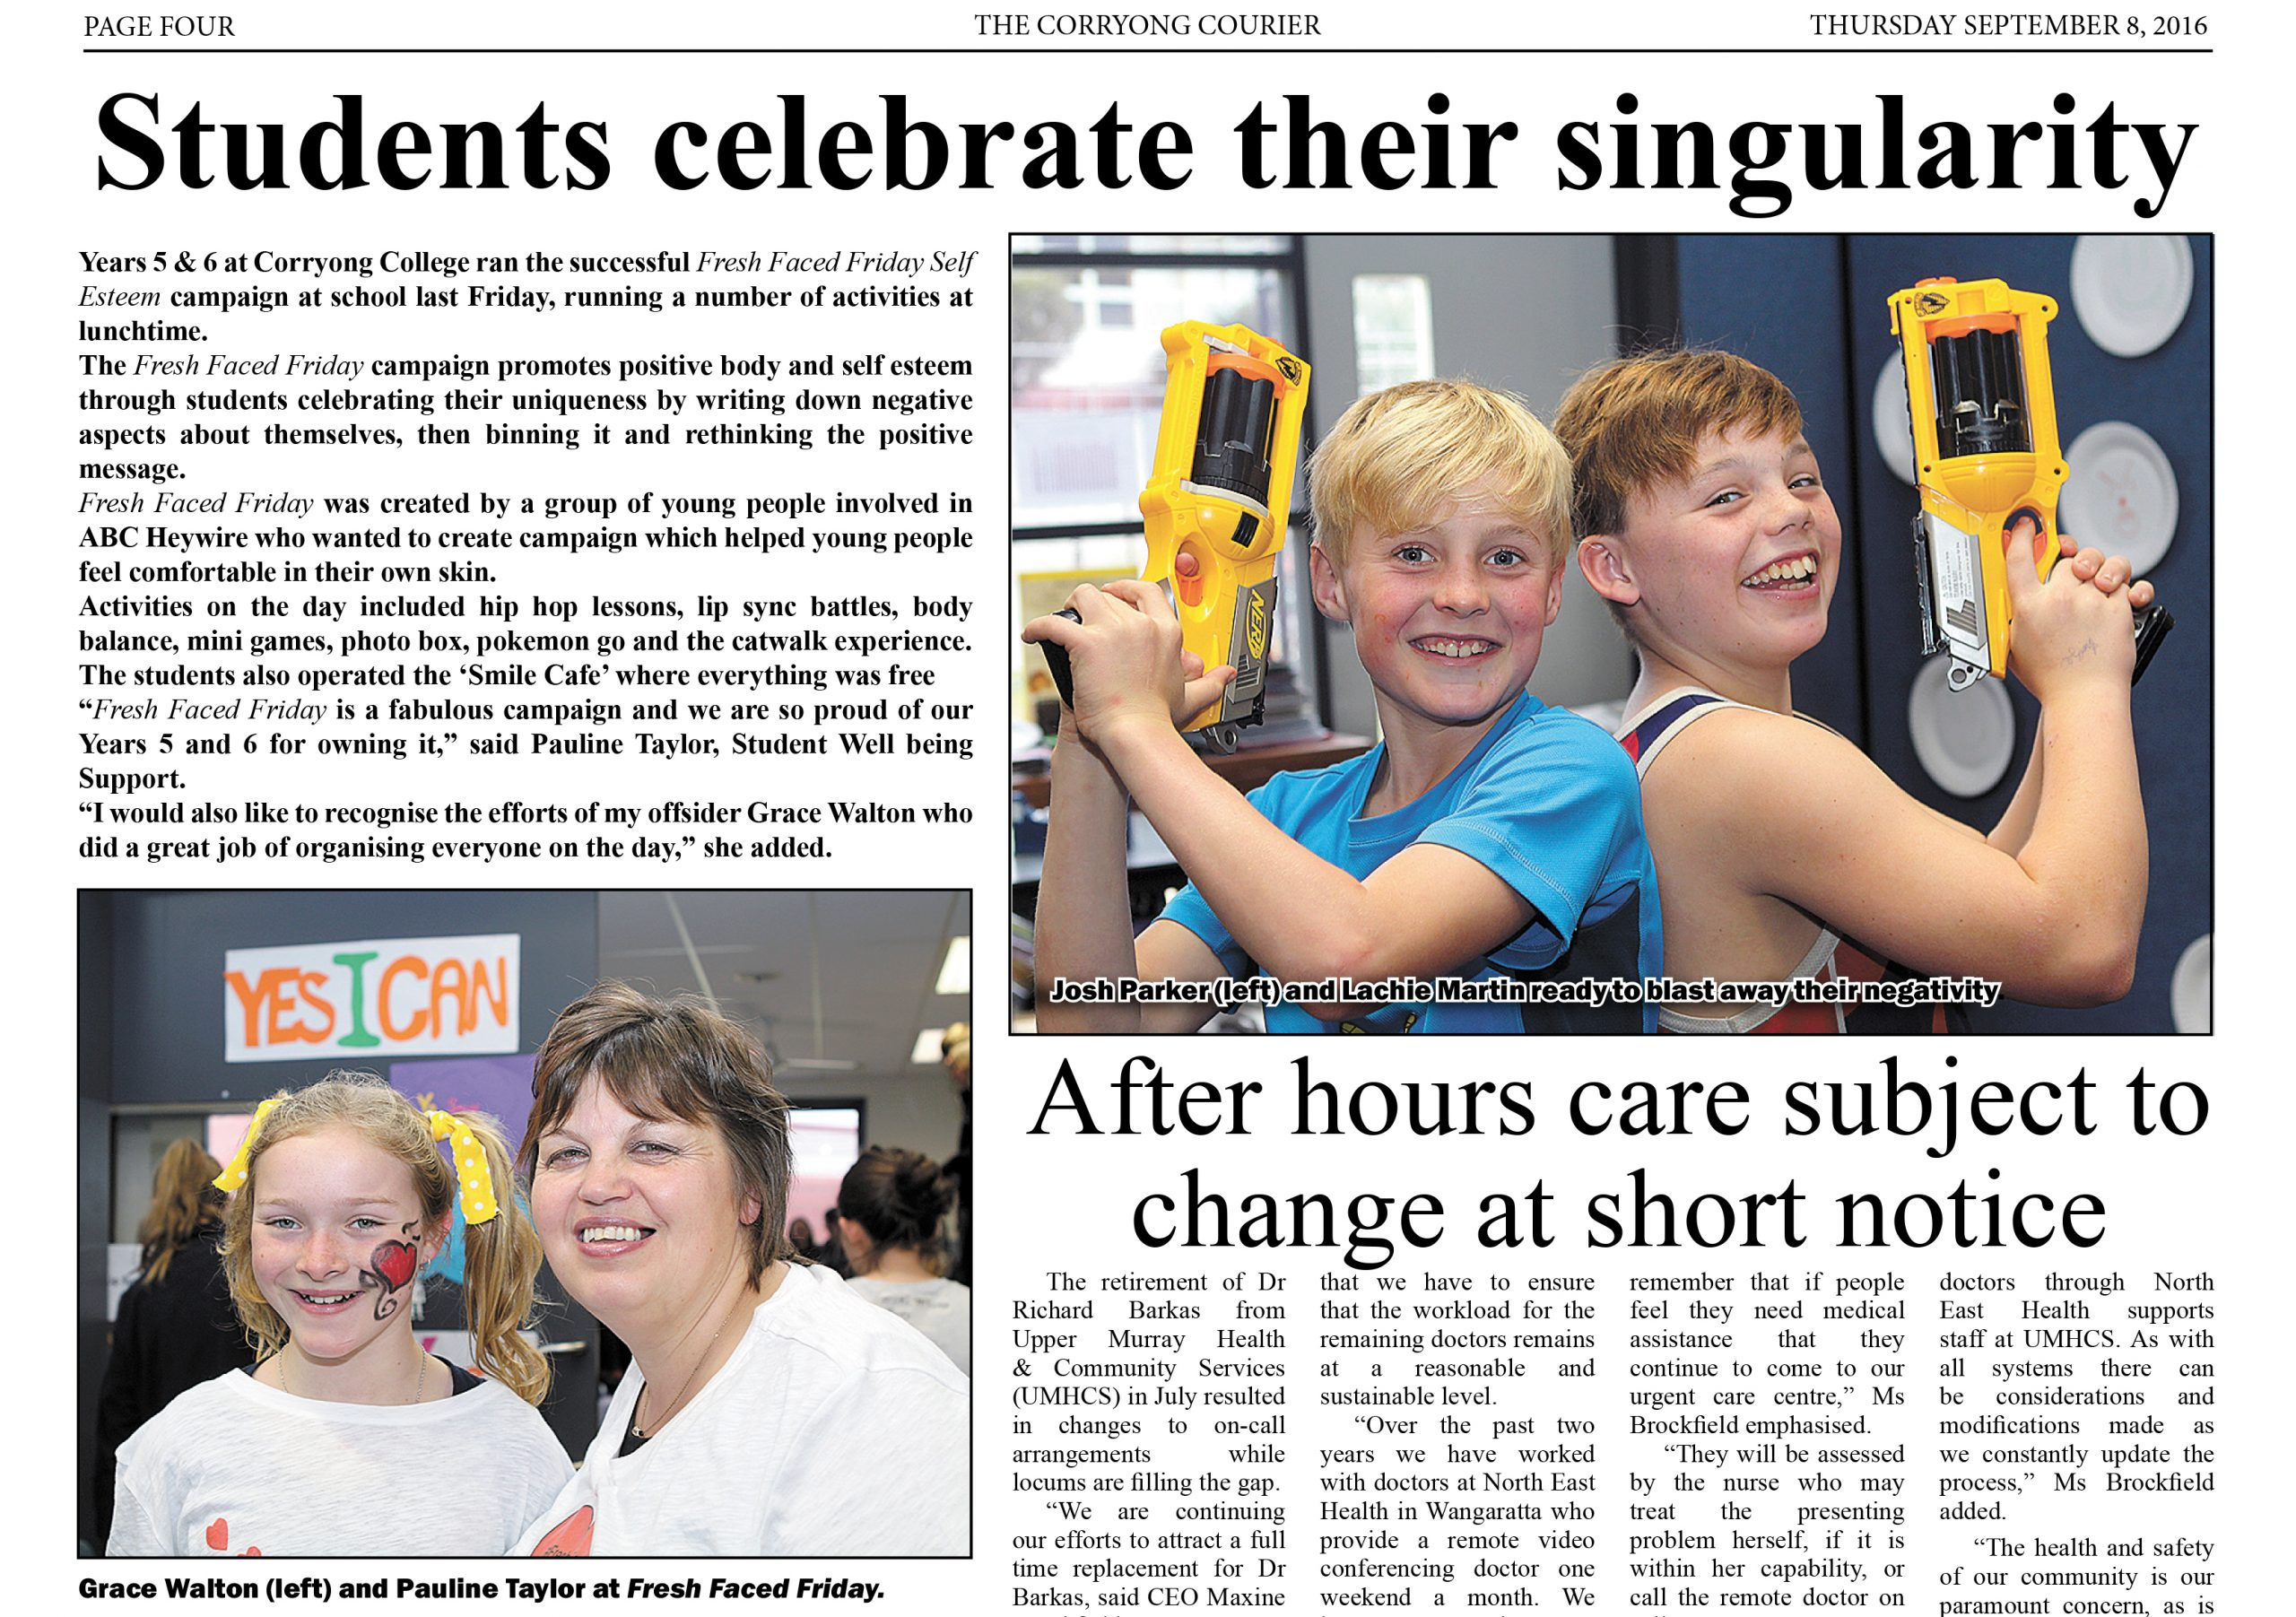 corryong courier - sept 8 2016